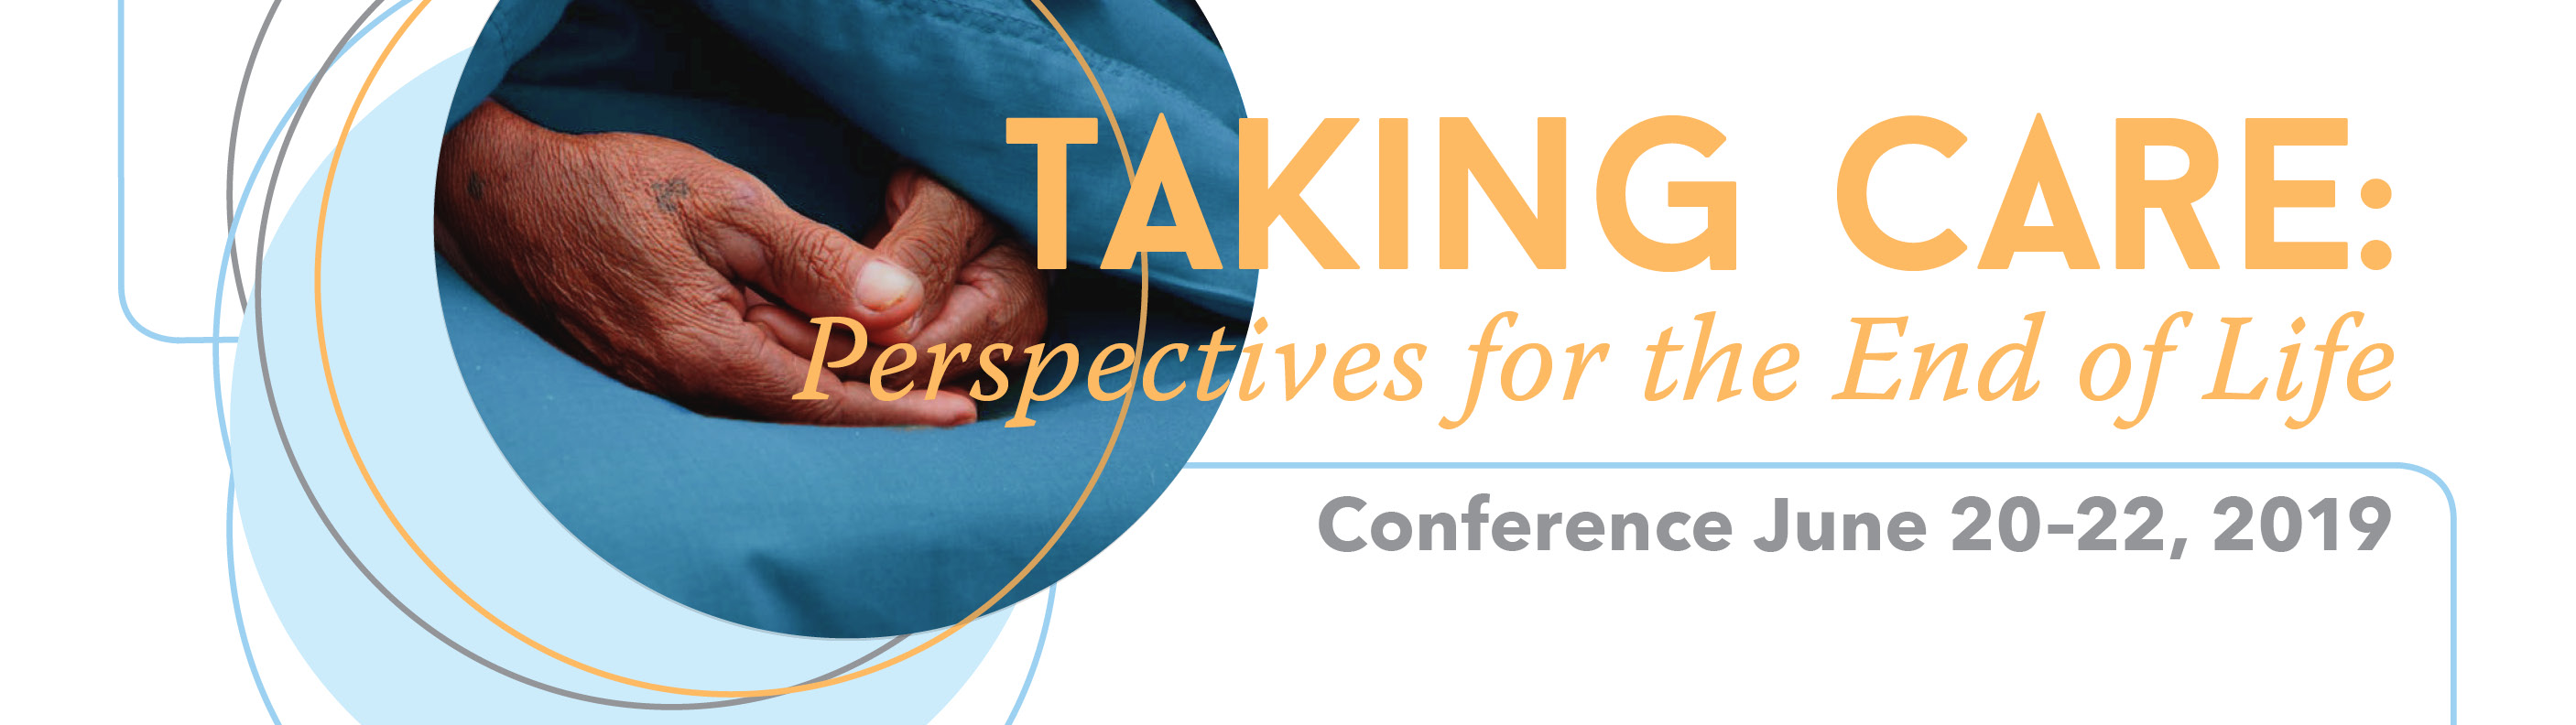 Taking Care Conference Header